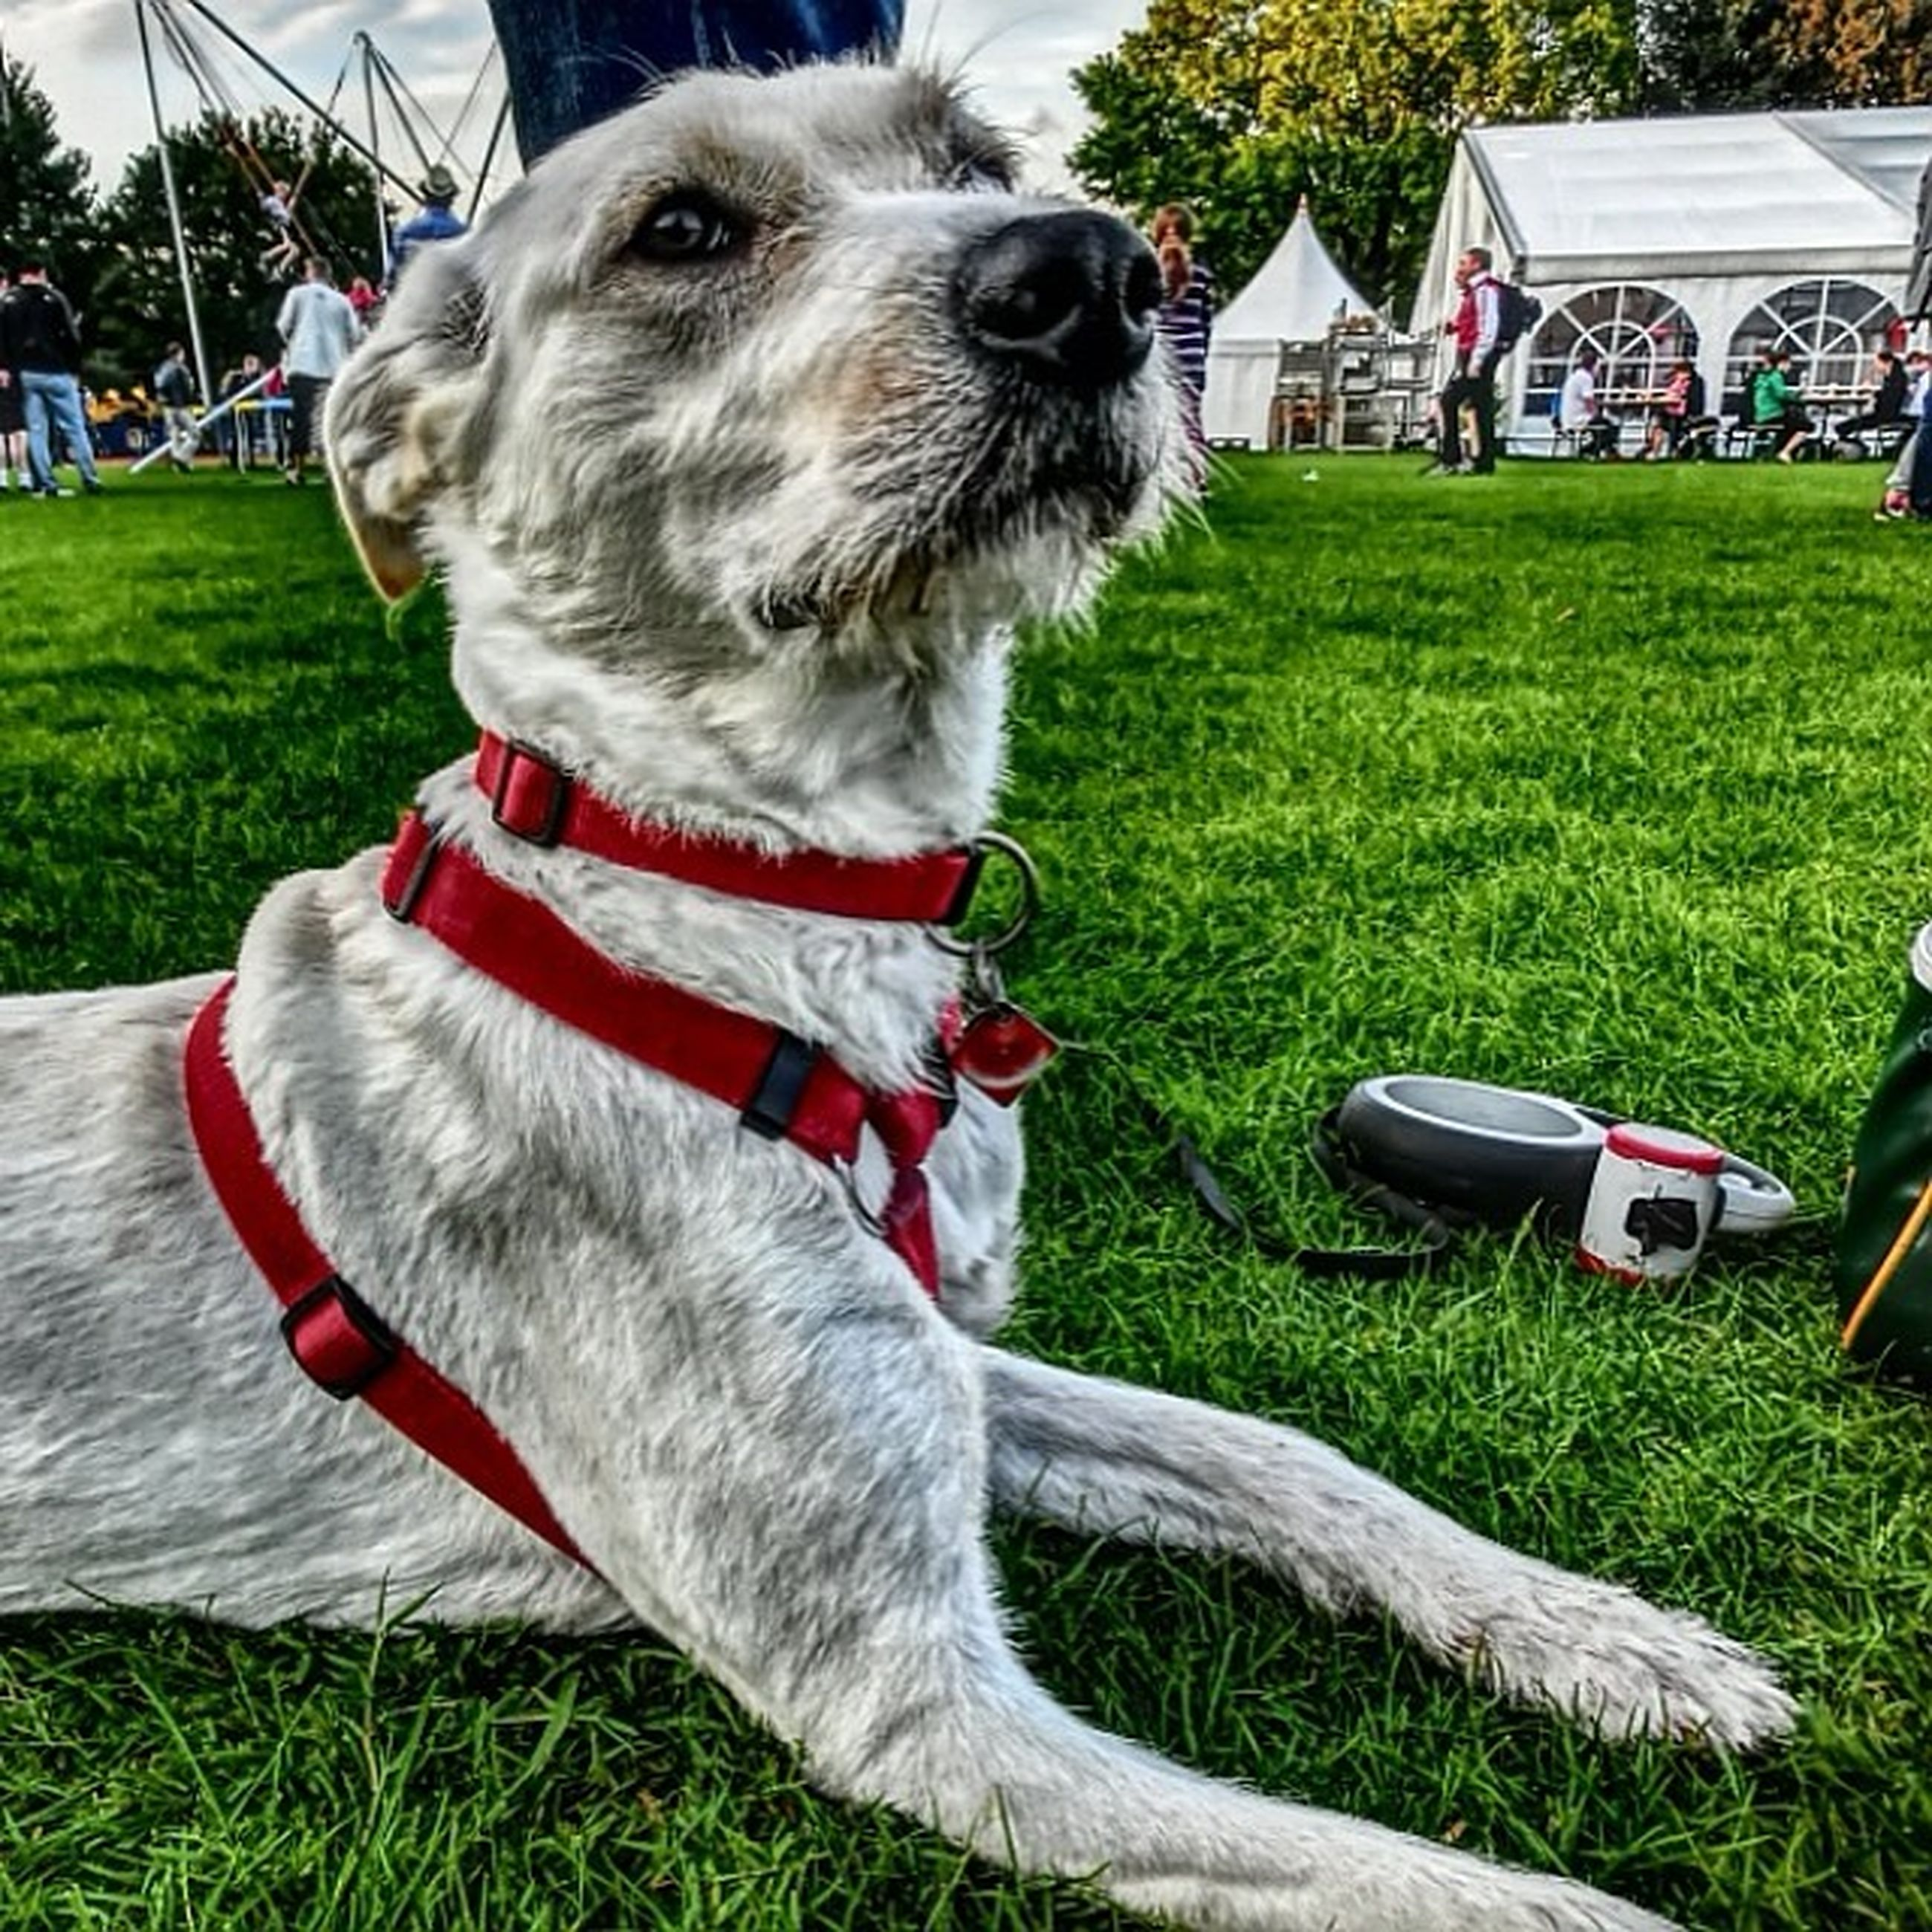 animal themes, domestic animals, one animal, dog, pets, grass, mammal, lawn, field, sitting, park - man made space, grassy, day, pet collar, outdoors, animal head, green color, close-up, relaxation, white color